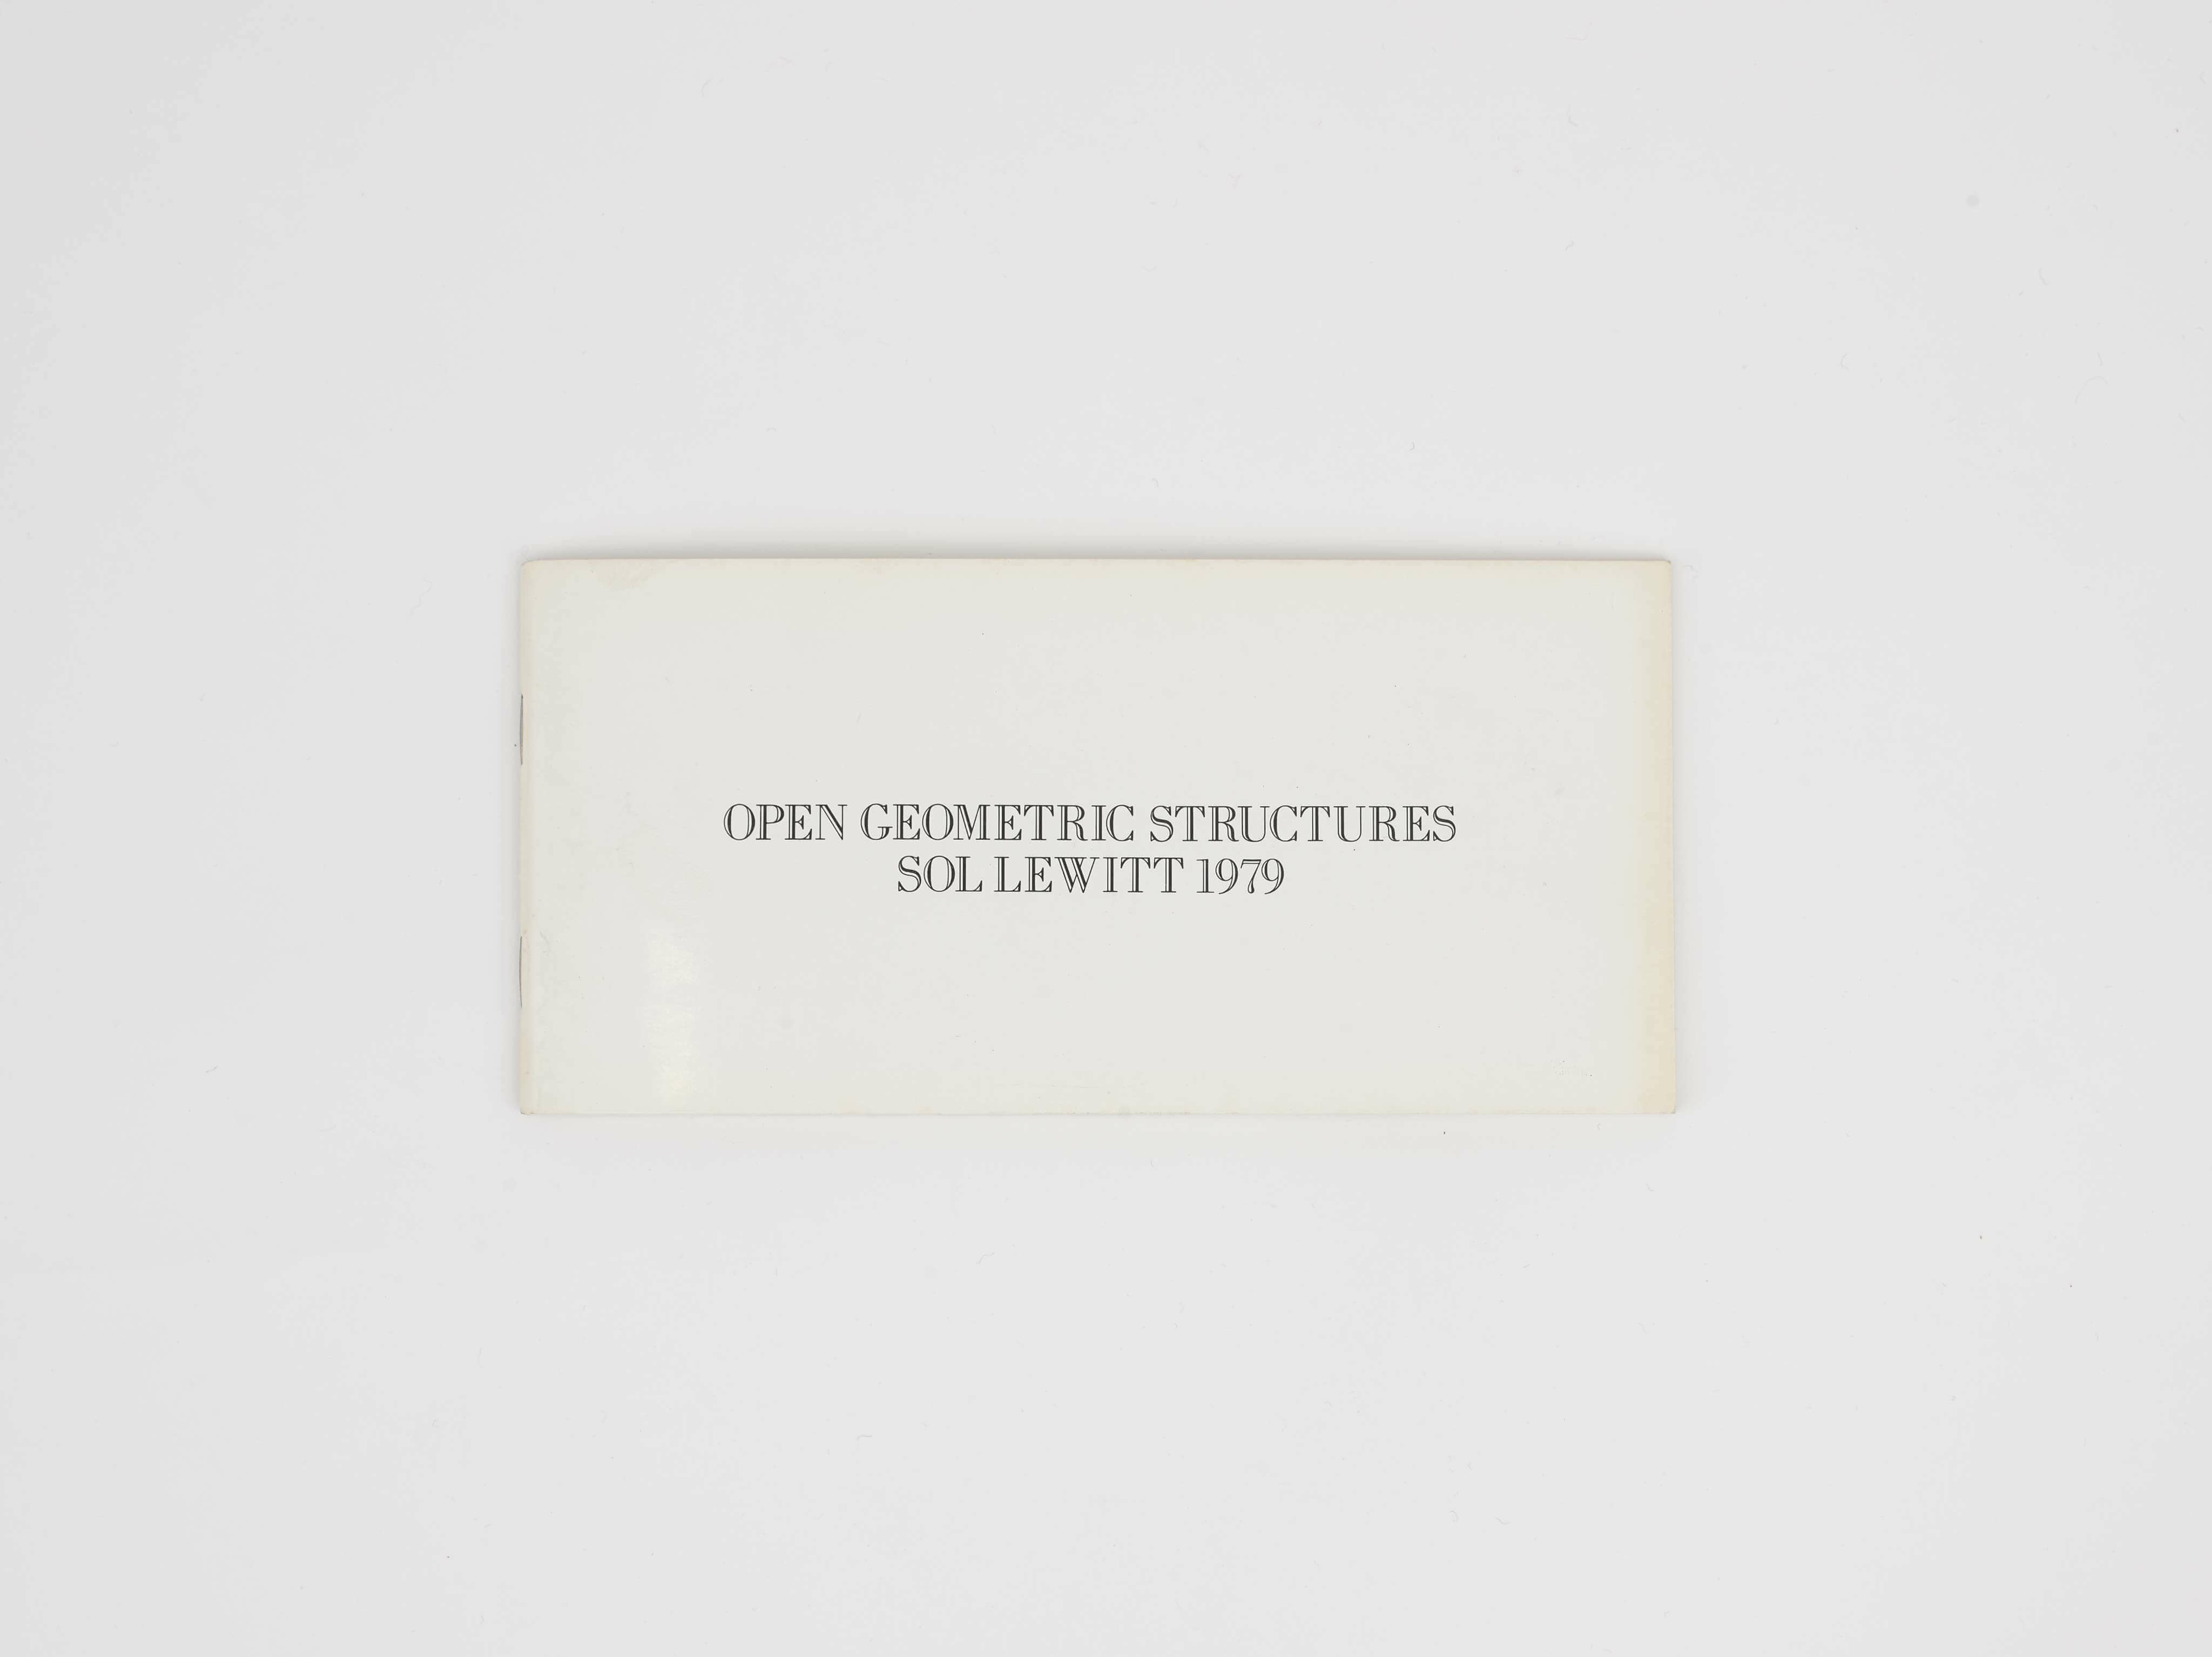 Open Geometric Structures: Five Geometric Structures and Their Combinations